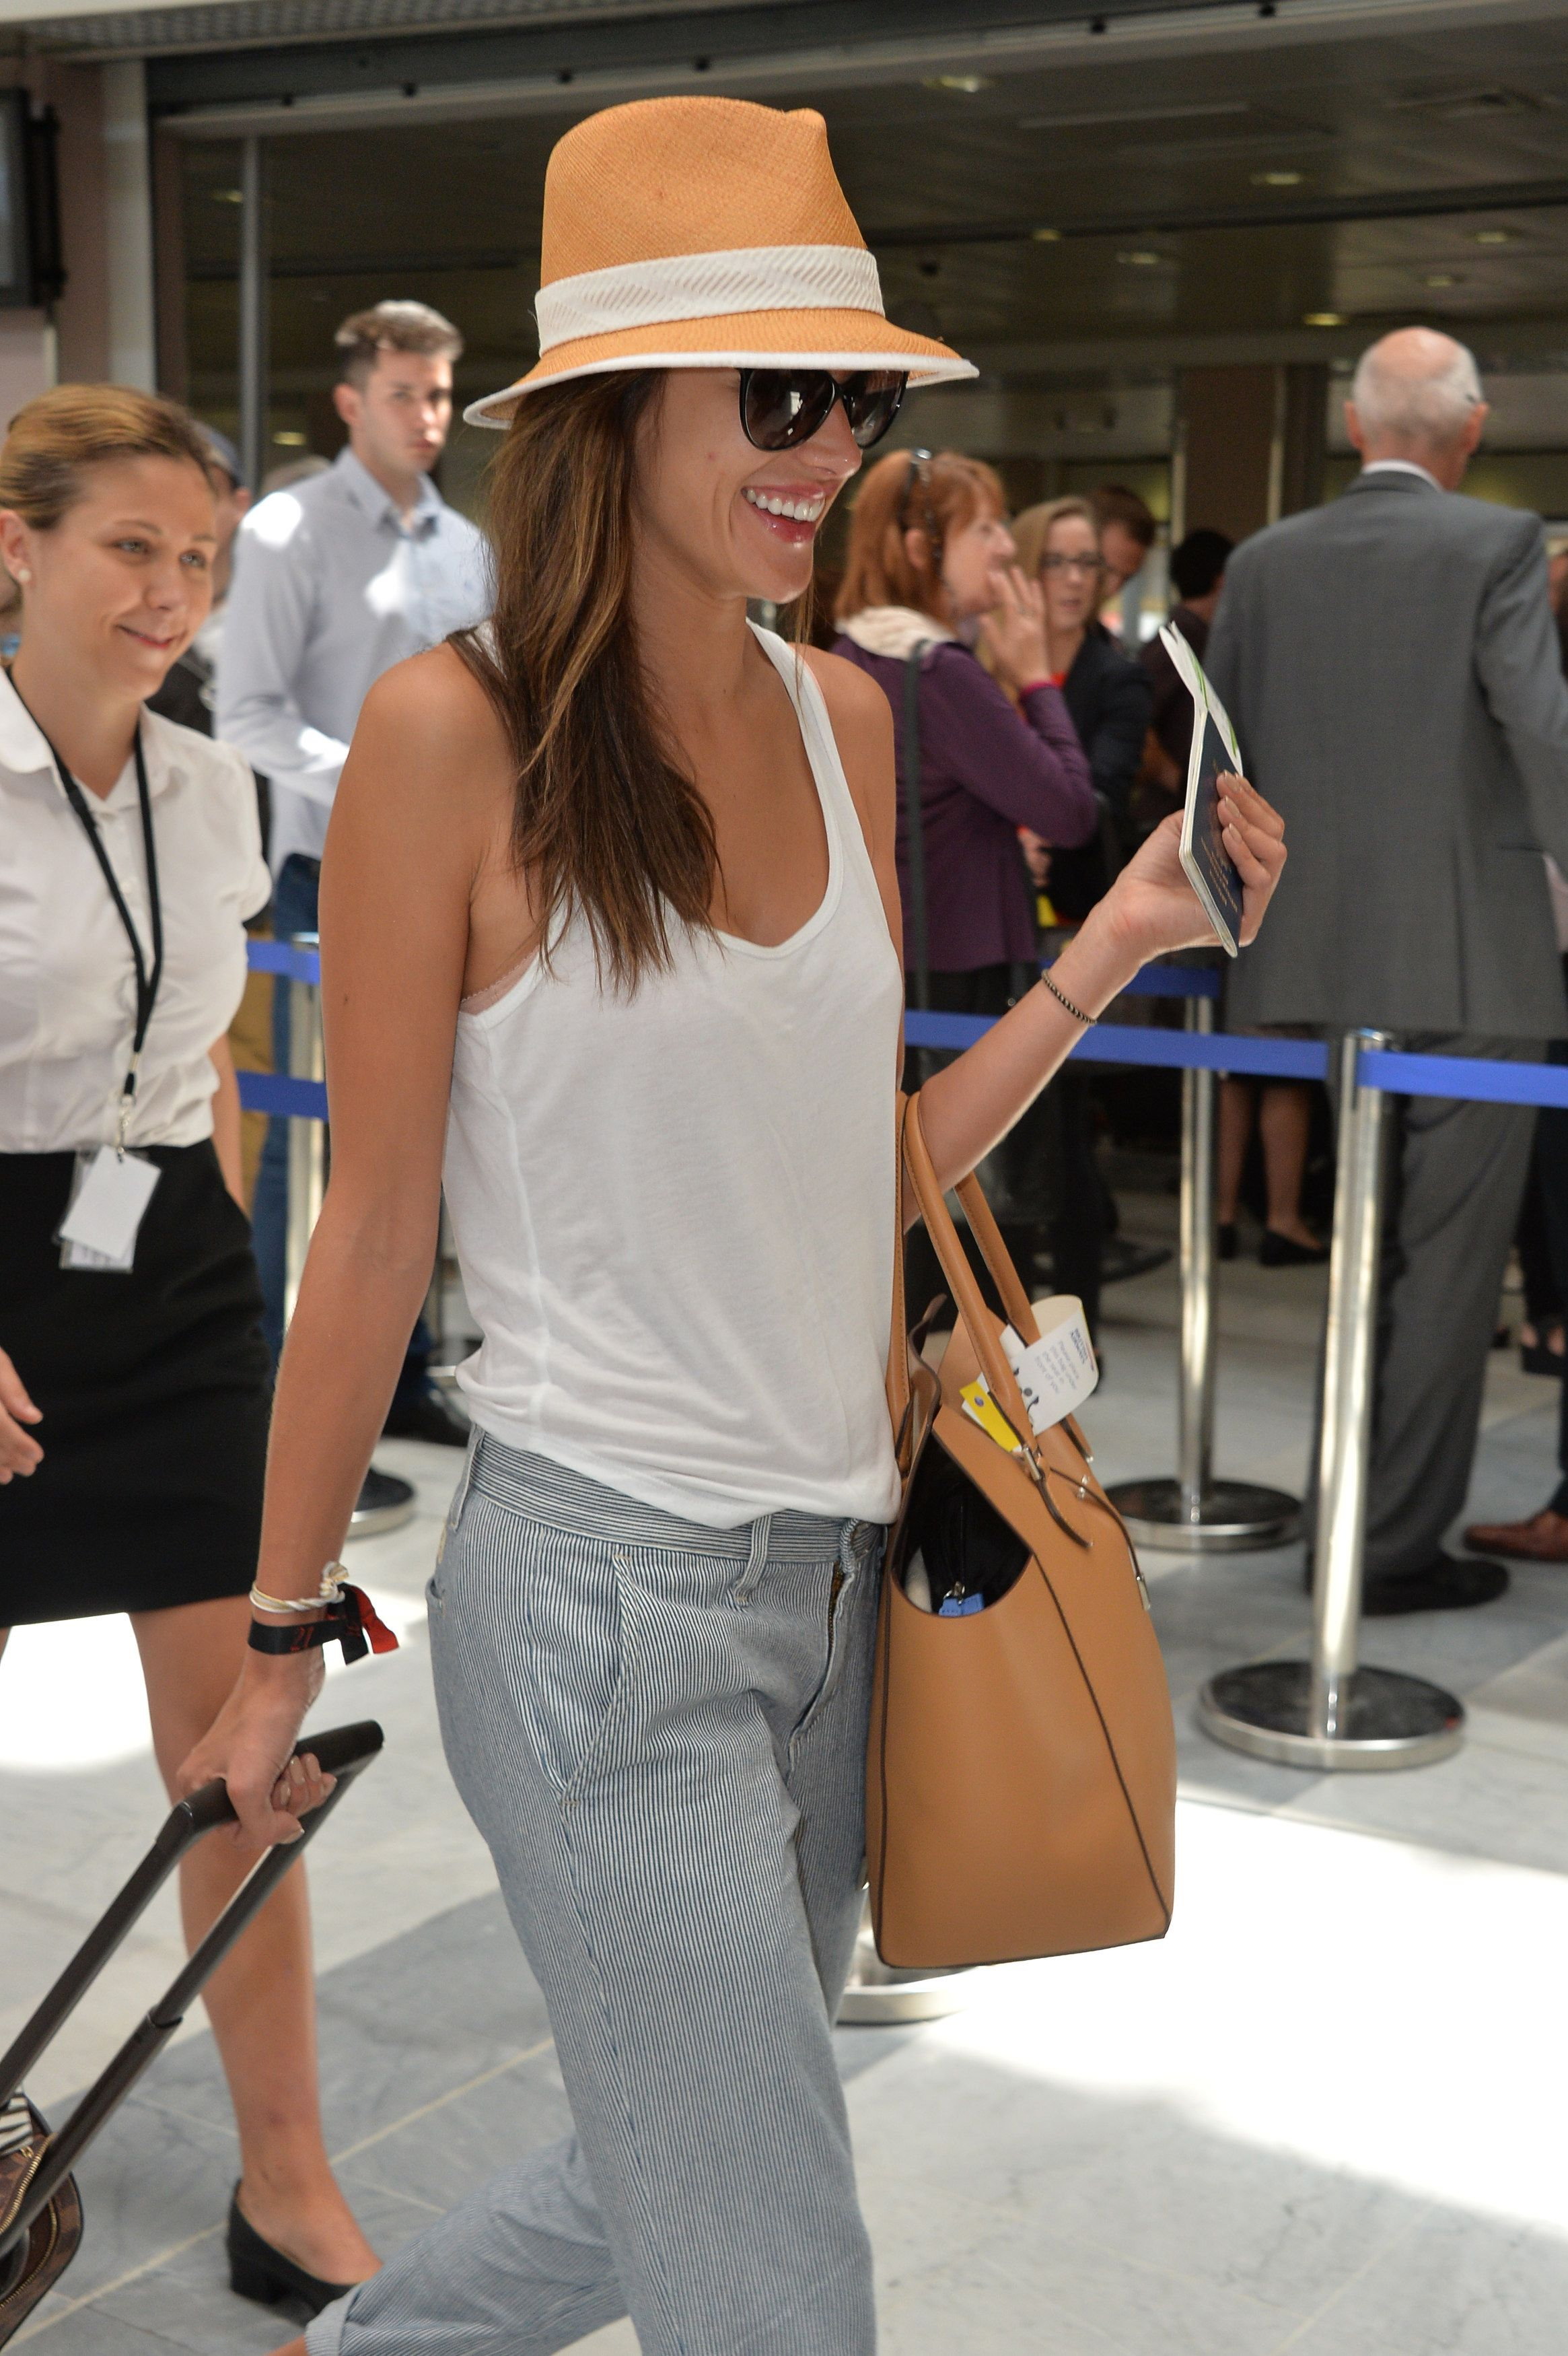 Alessandra ambrosio airport syle, white tank top outfit, street style, summer  outfit 2014